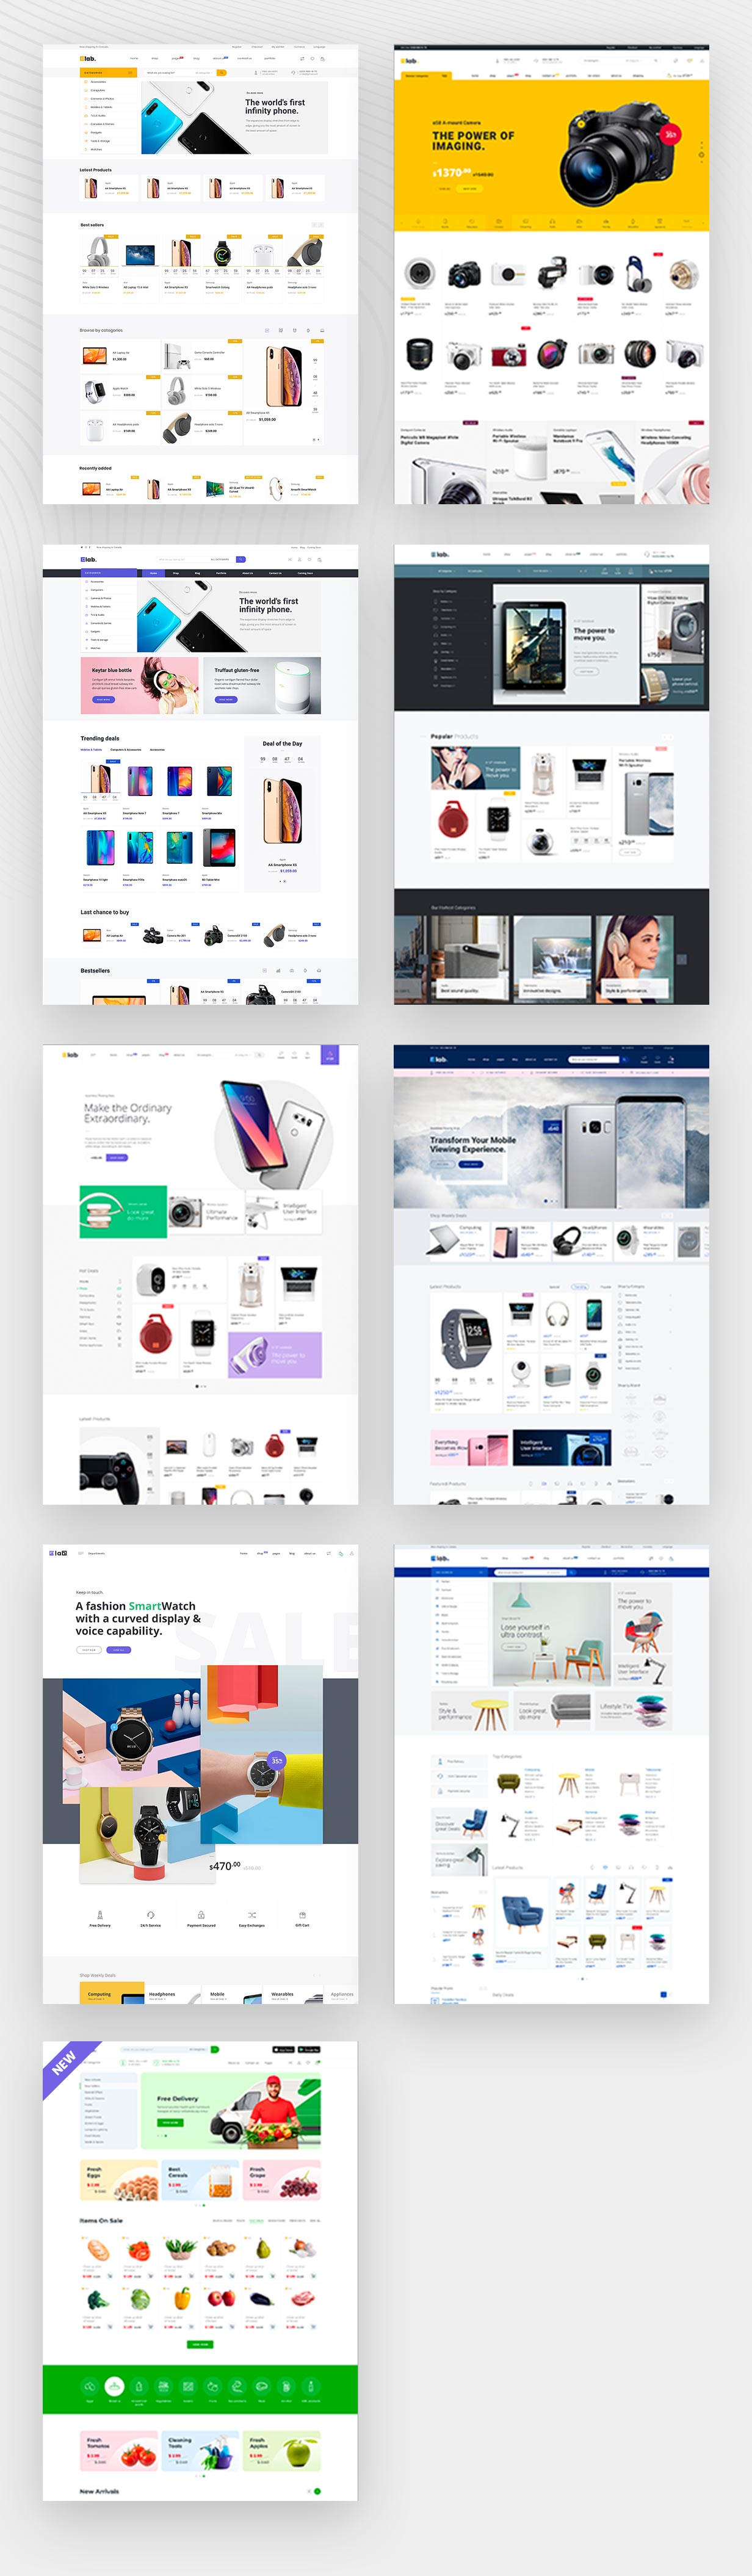 eLab Multi Vendor Marketplace WordPress Theme Demos